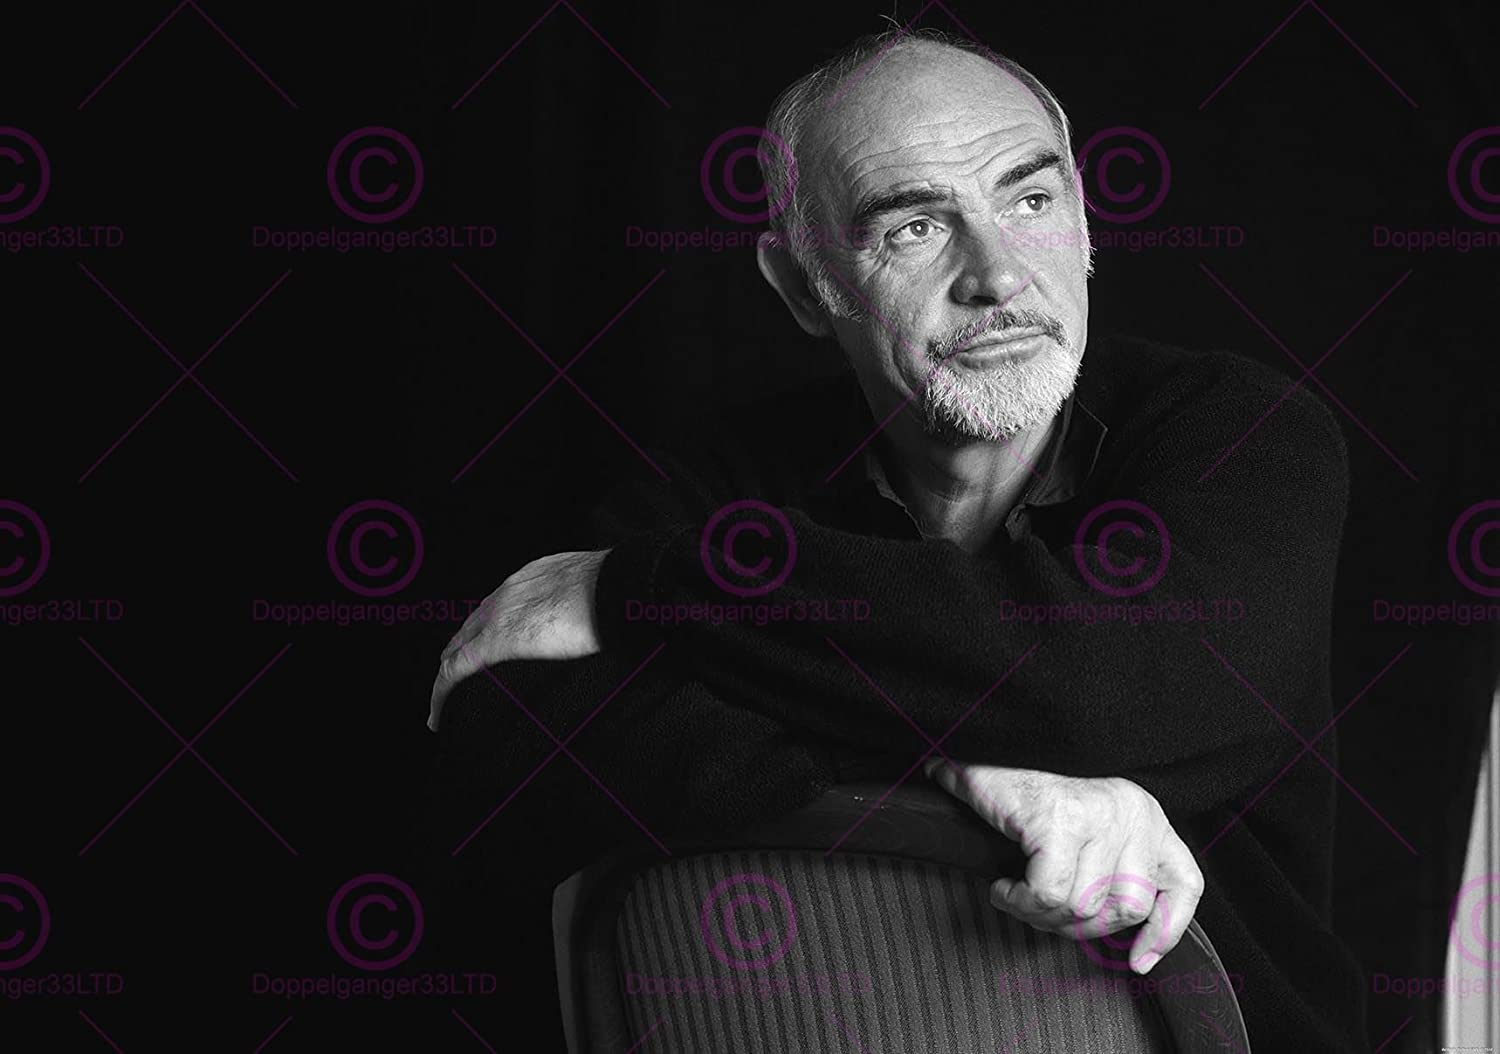 Amazon Com Doppelganger33ltd Photograph Portrait Actor Sean Connery James Bond Poster Art Print Lv11029 Posters Prints